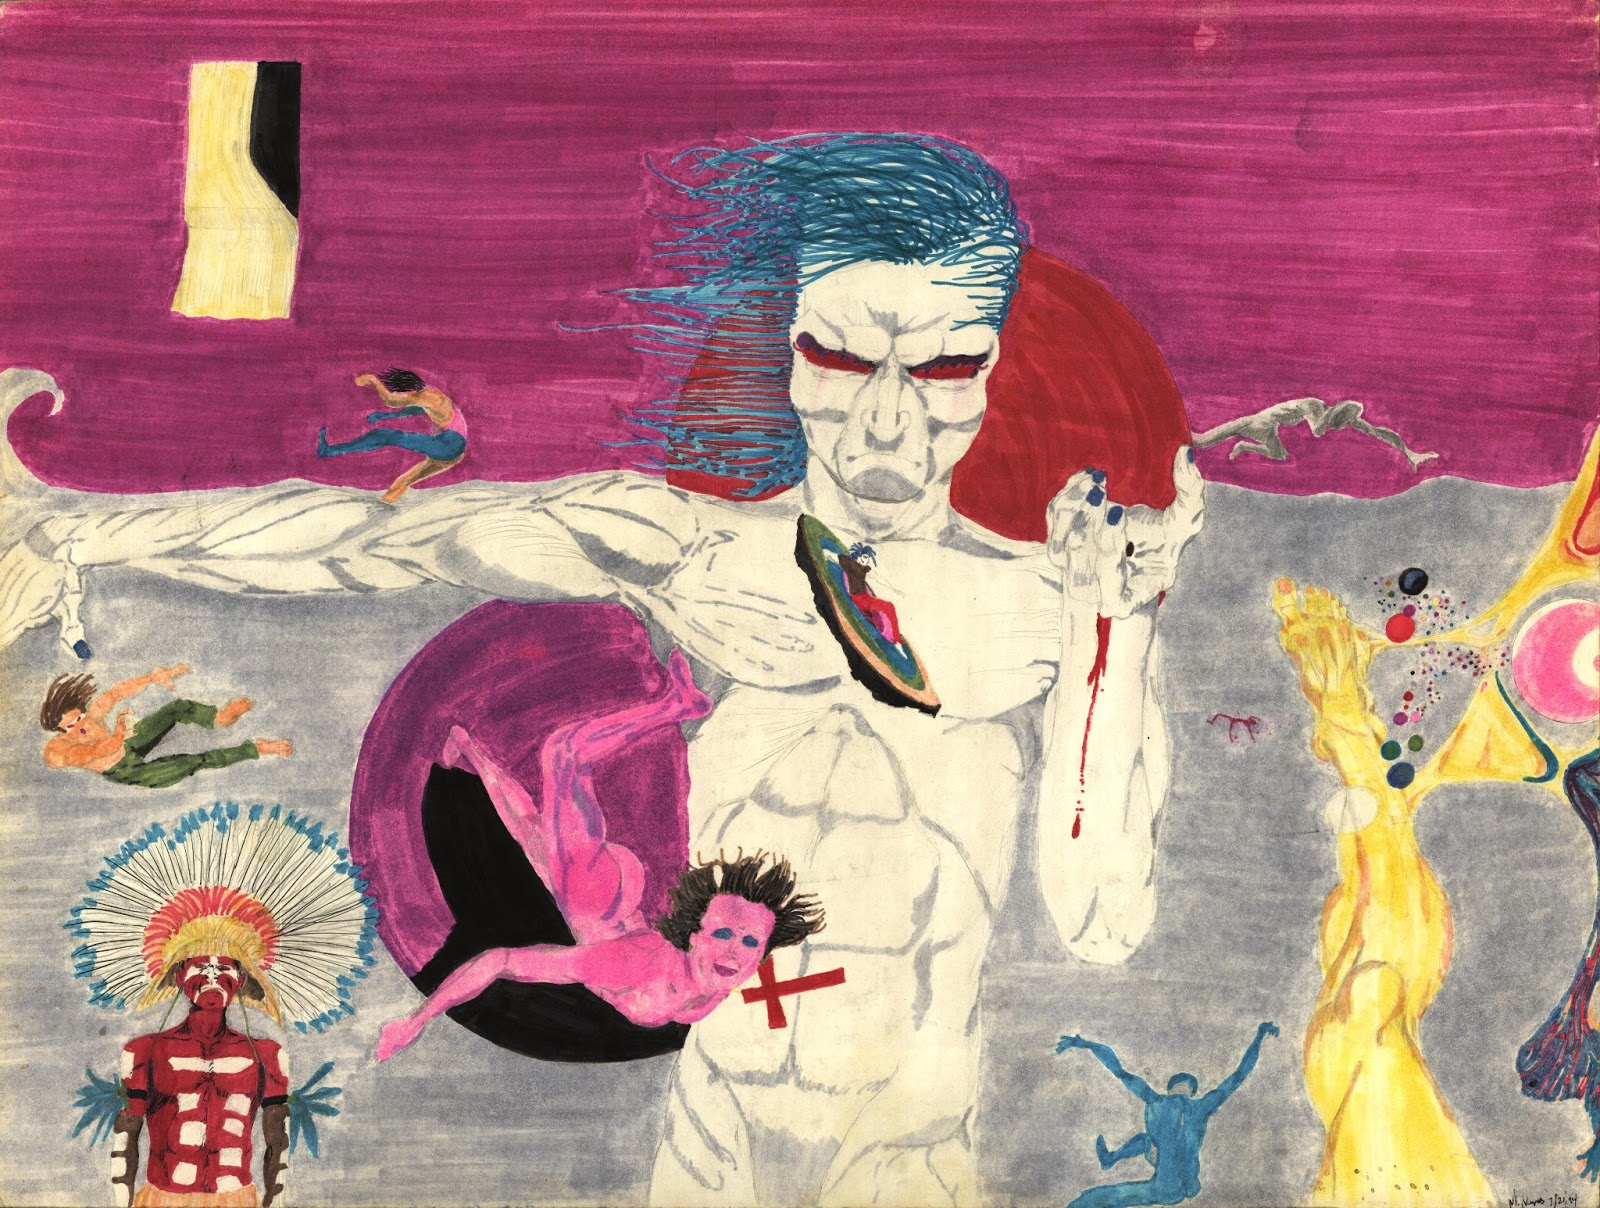 pictures AnAustrian Artist Was Sentenced toJail for His Provocative Illustrations, But HeDidn't Give UpDrawing the Truth